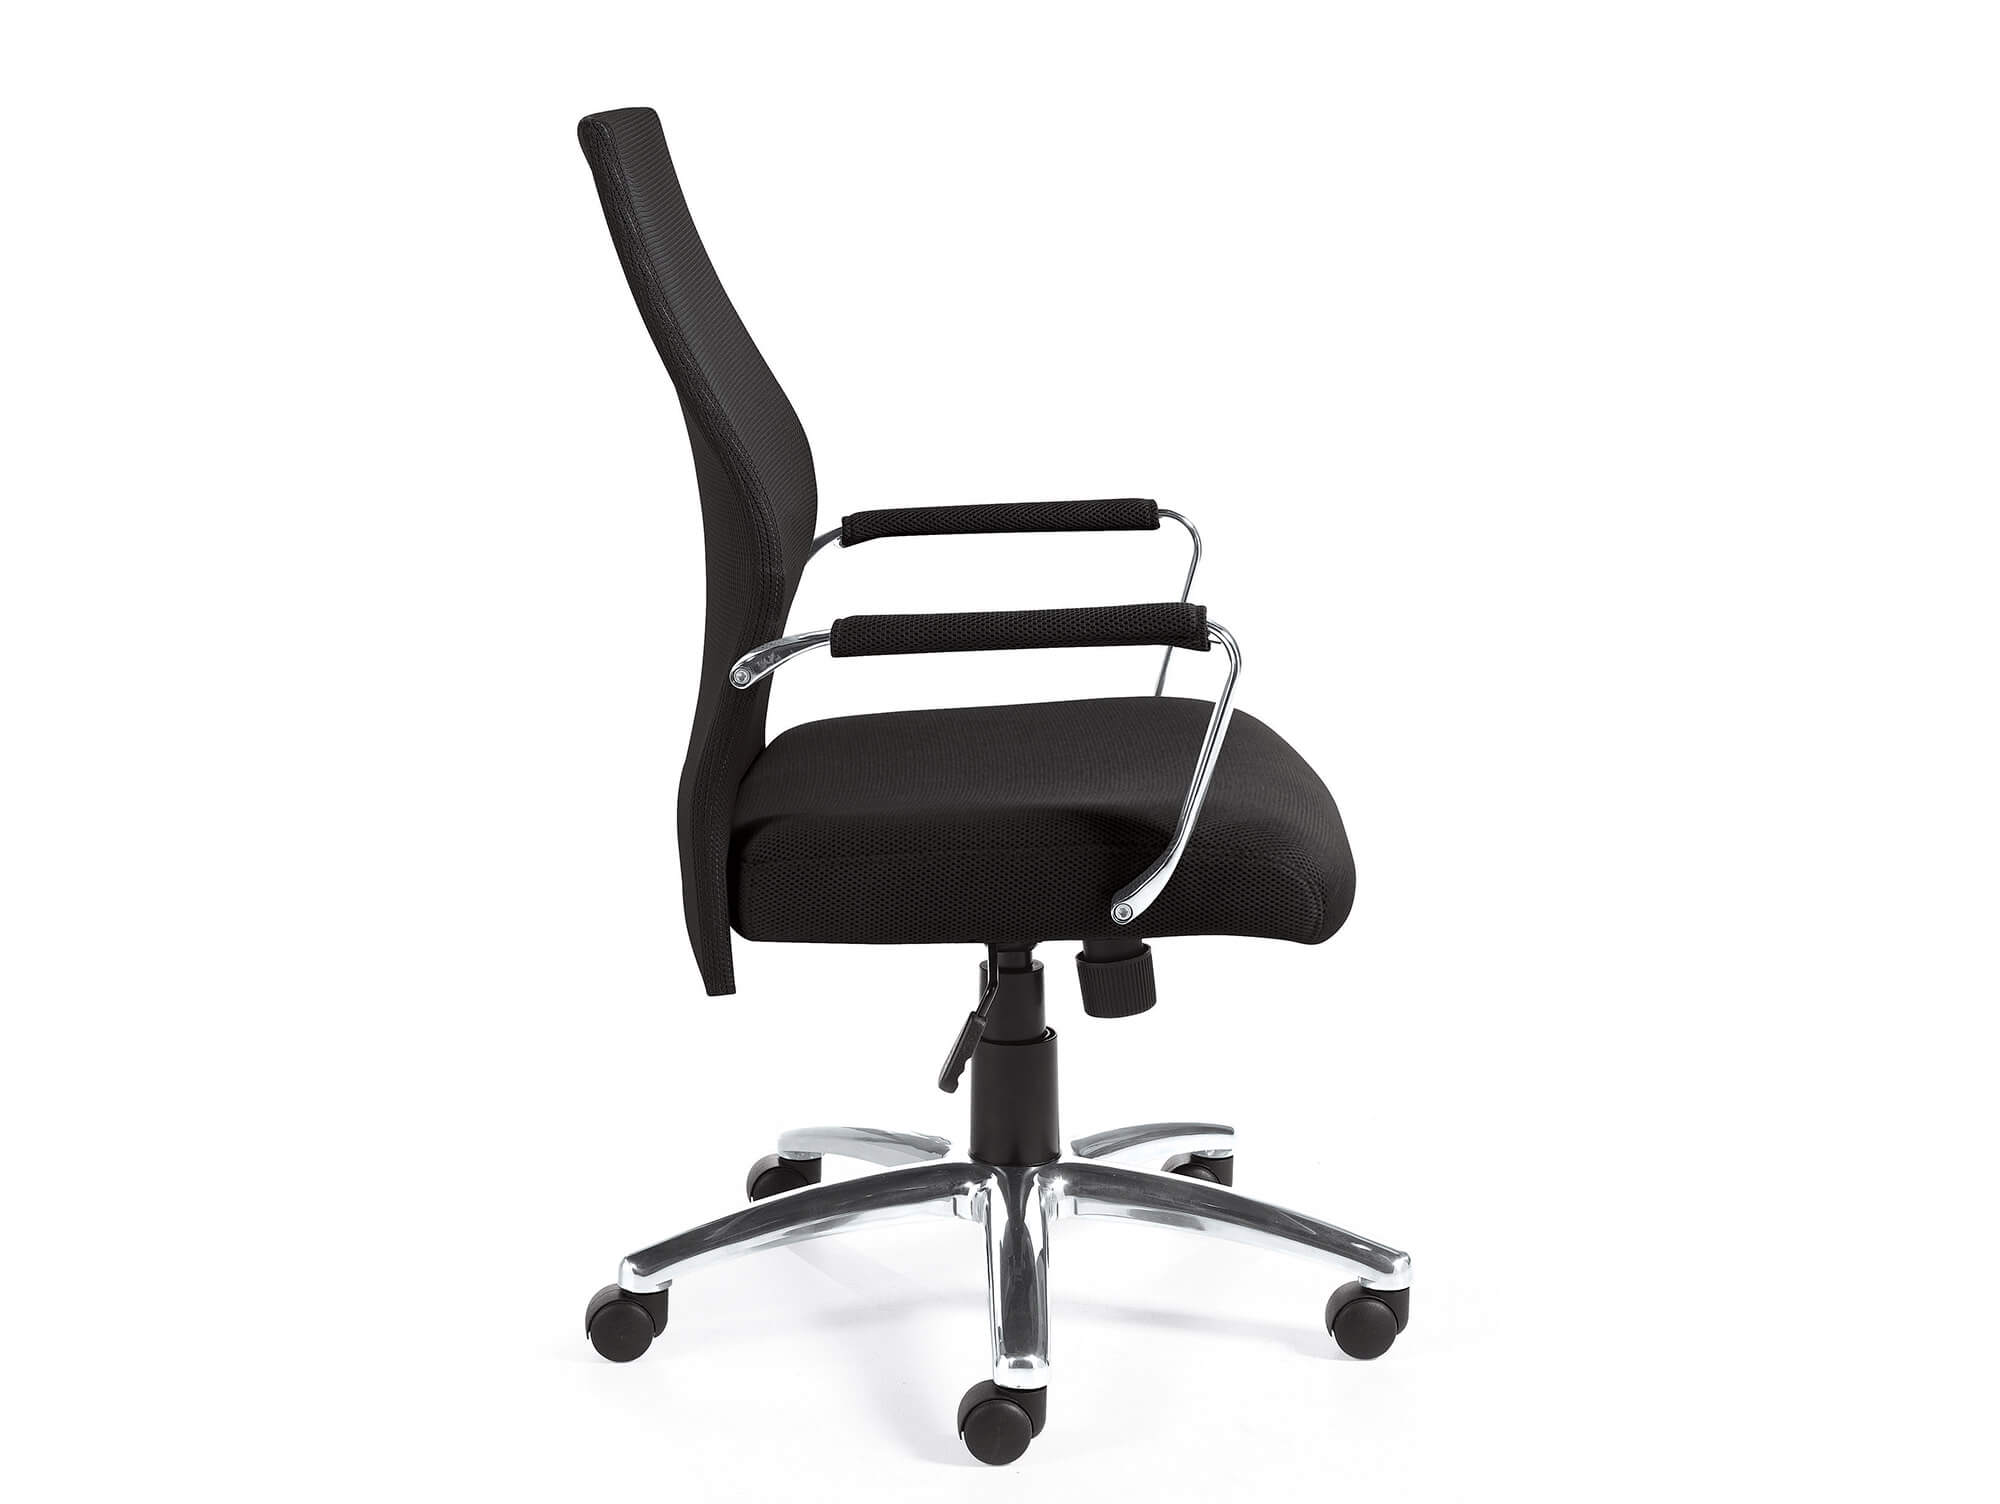 Conference style seating CUB 11657B GTO